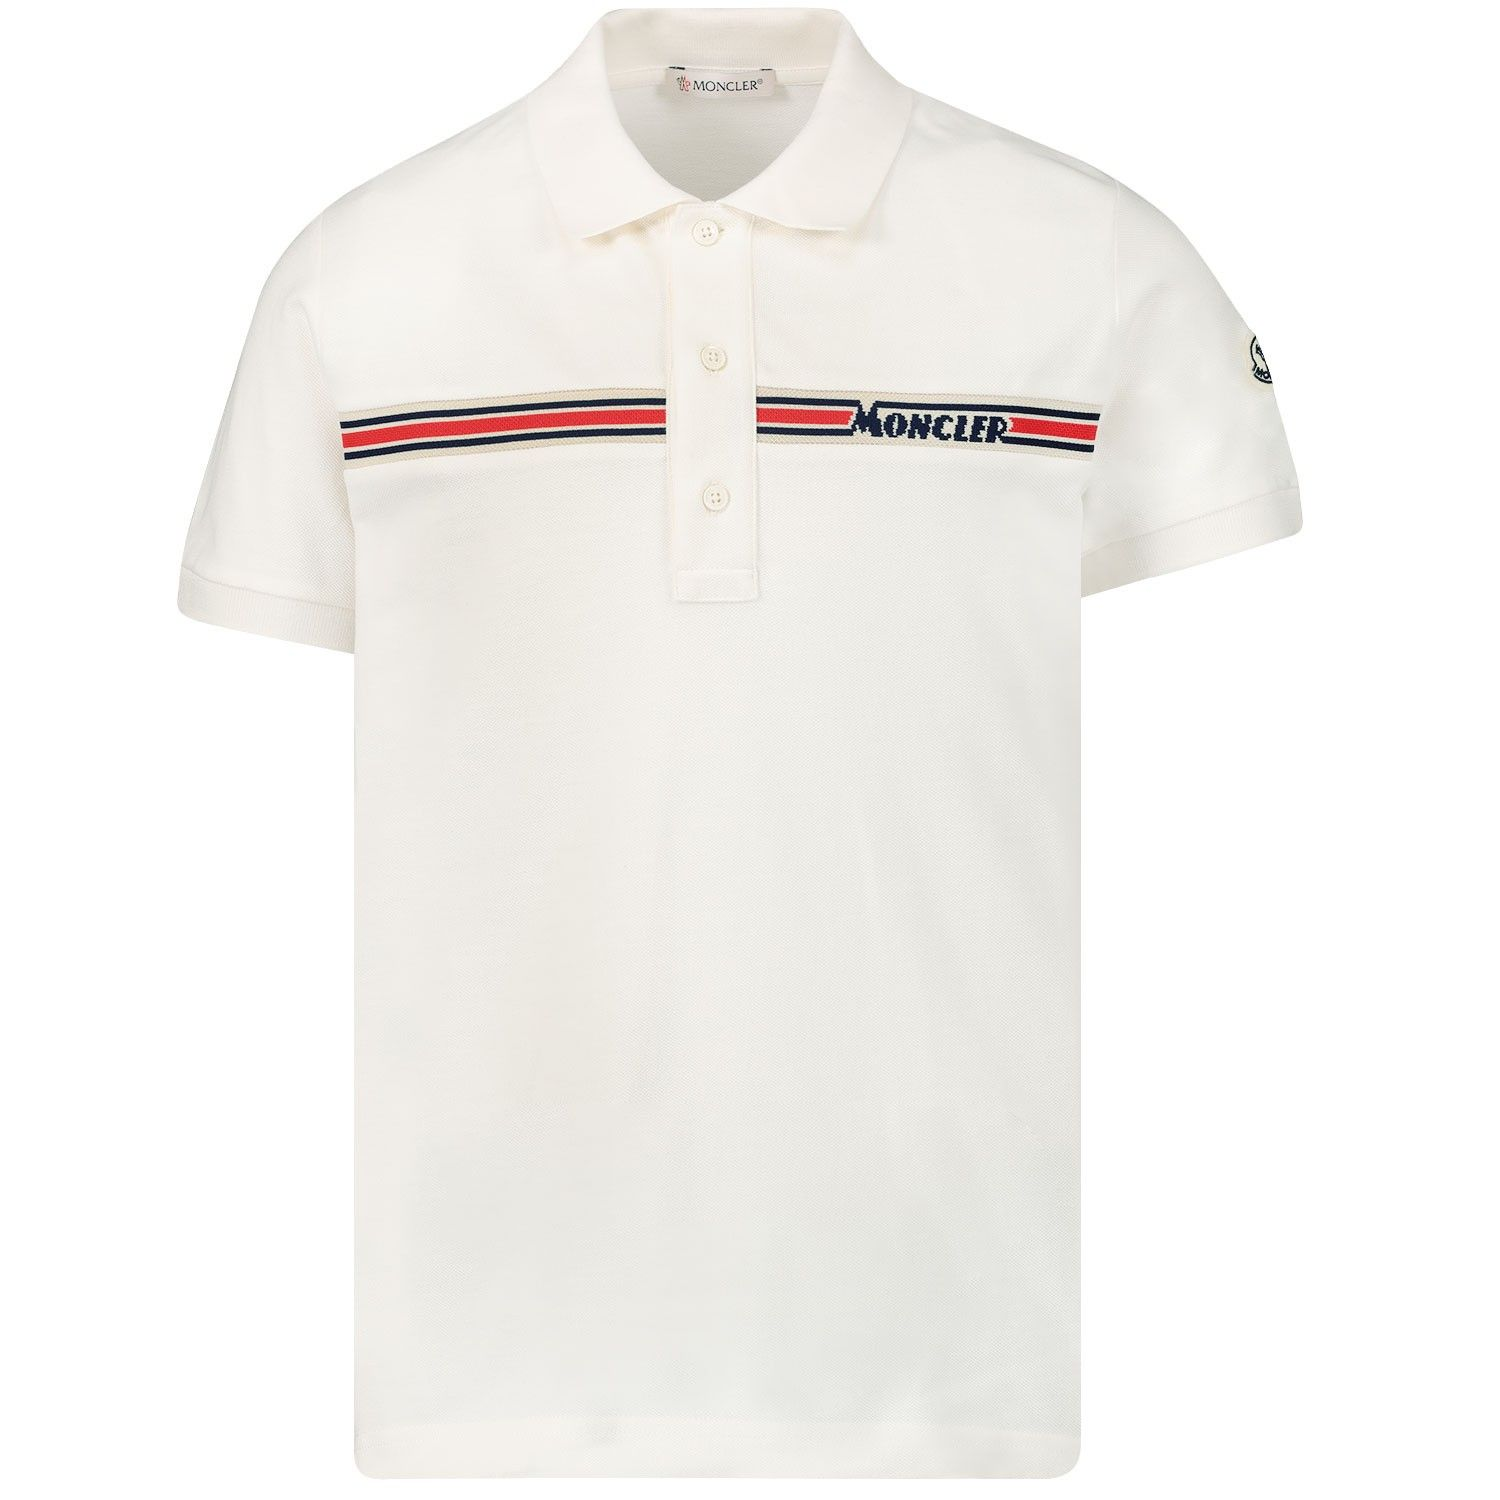 Picture of Moncler 8A70320 kids polo shirt white